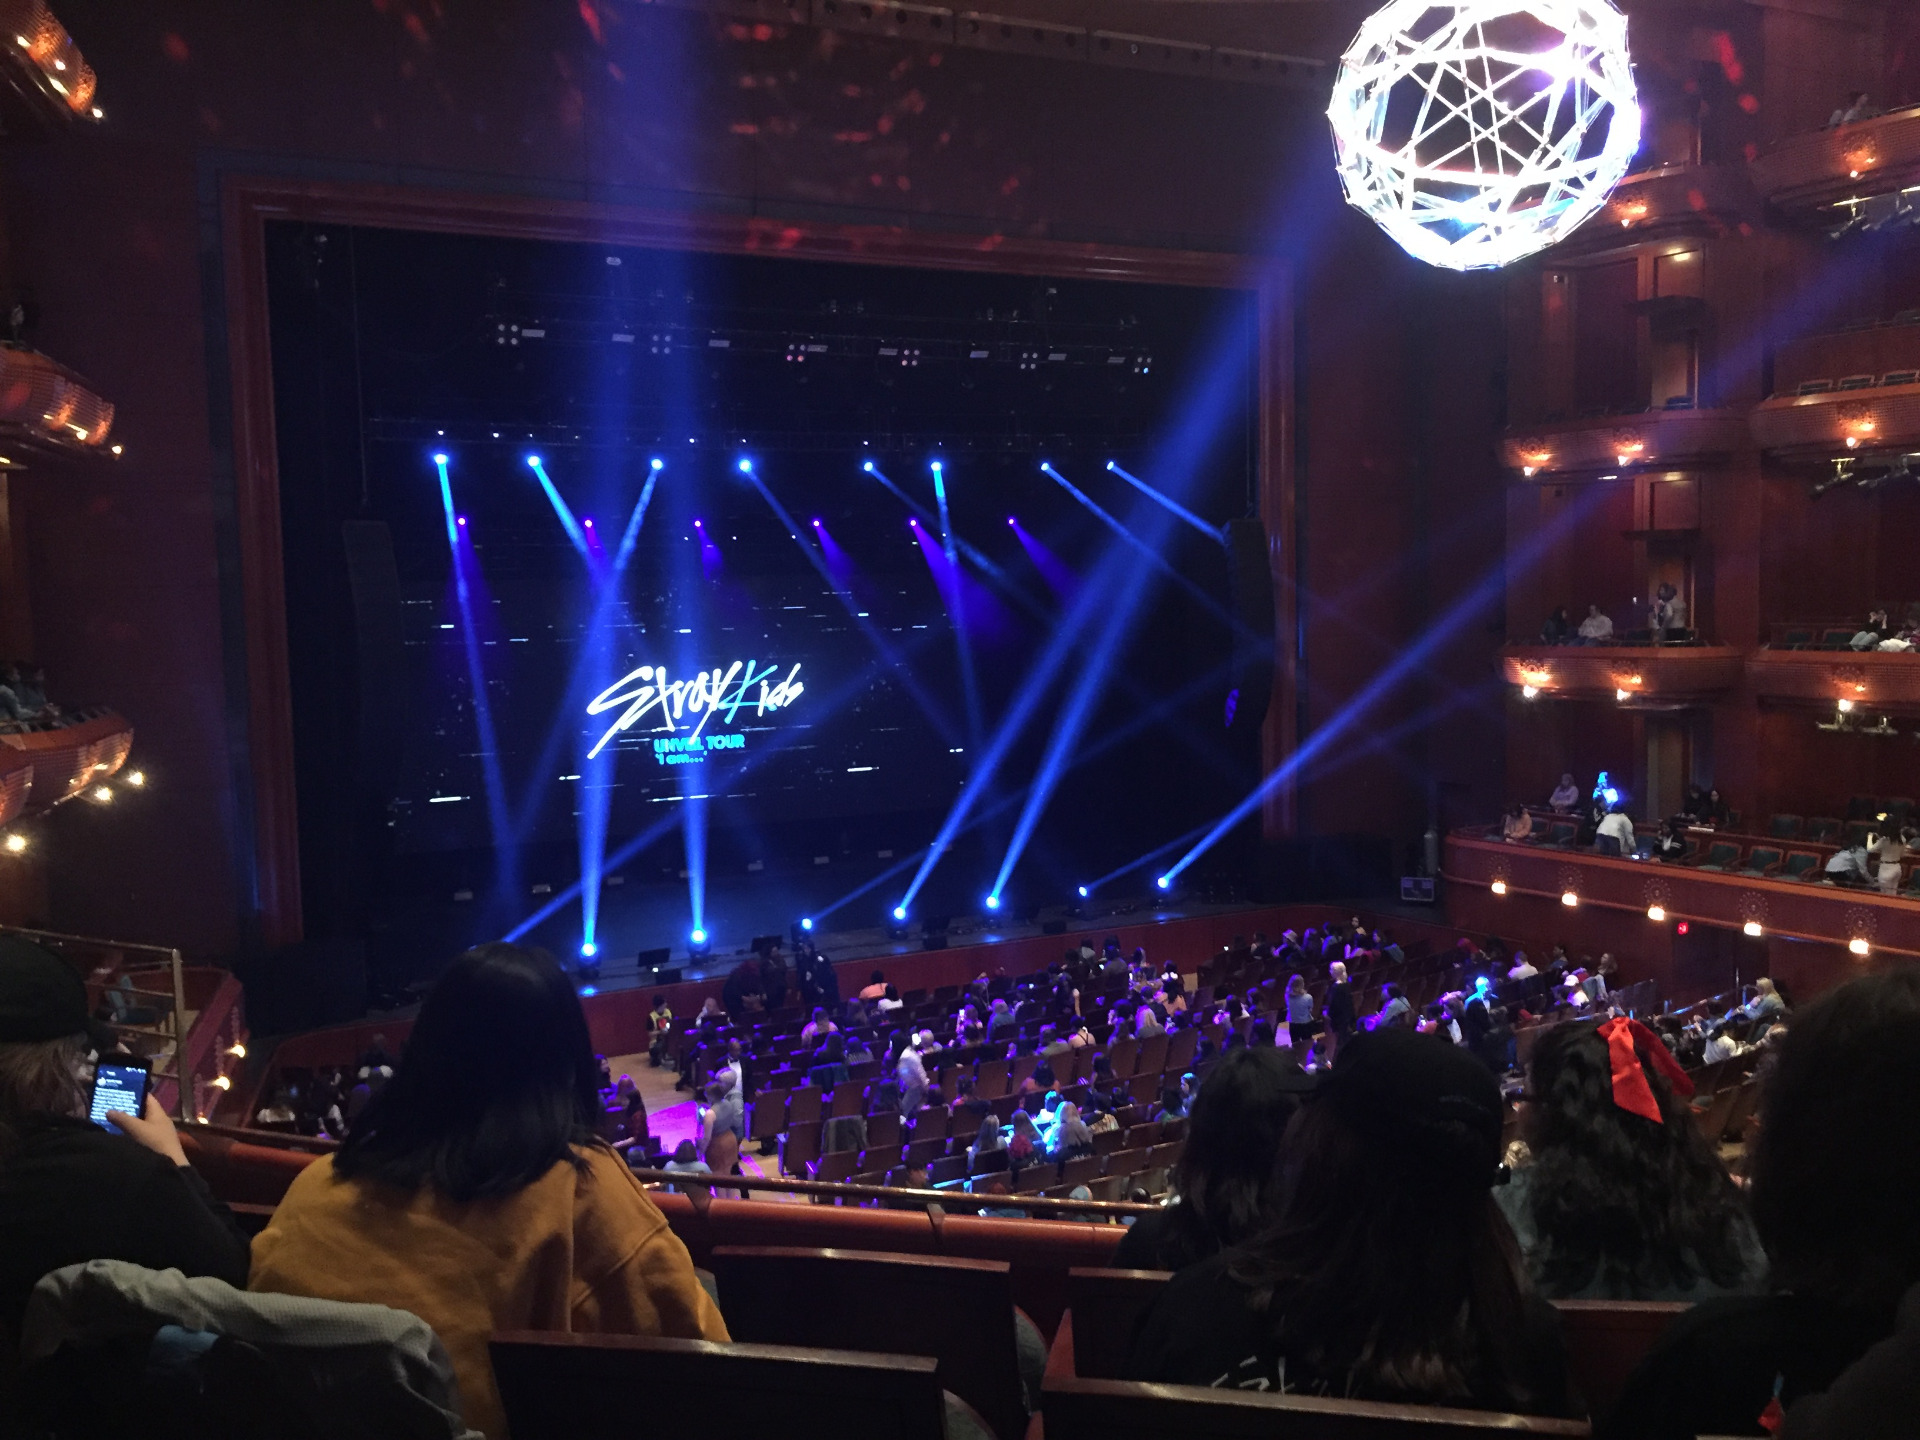 Prudential Hall at the New Jersey Performing Arts Center Section TIER 1 L Row D Seat 19